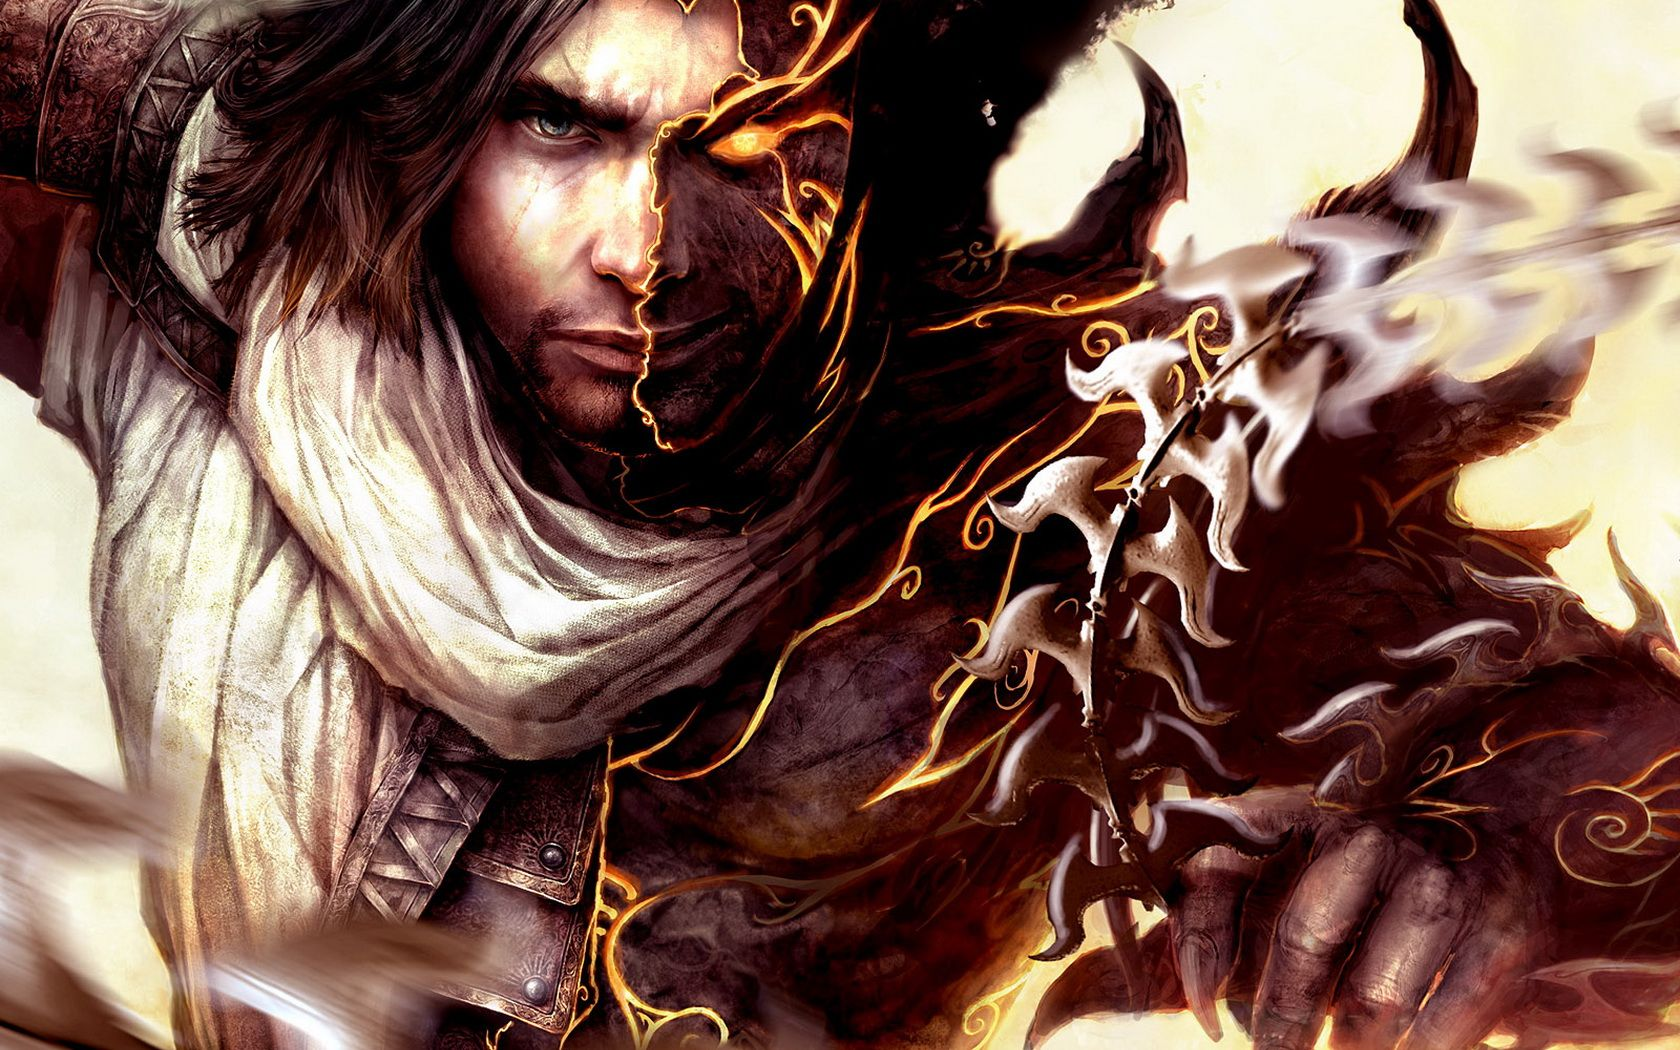 Video Game - Prince Of Persia: The Two Thrones Bakgrund